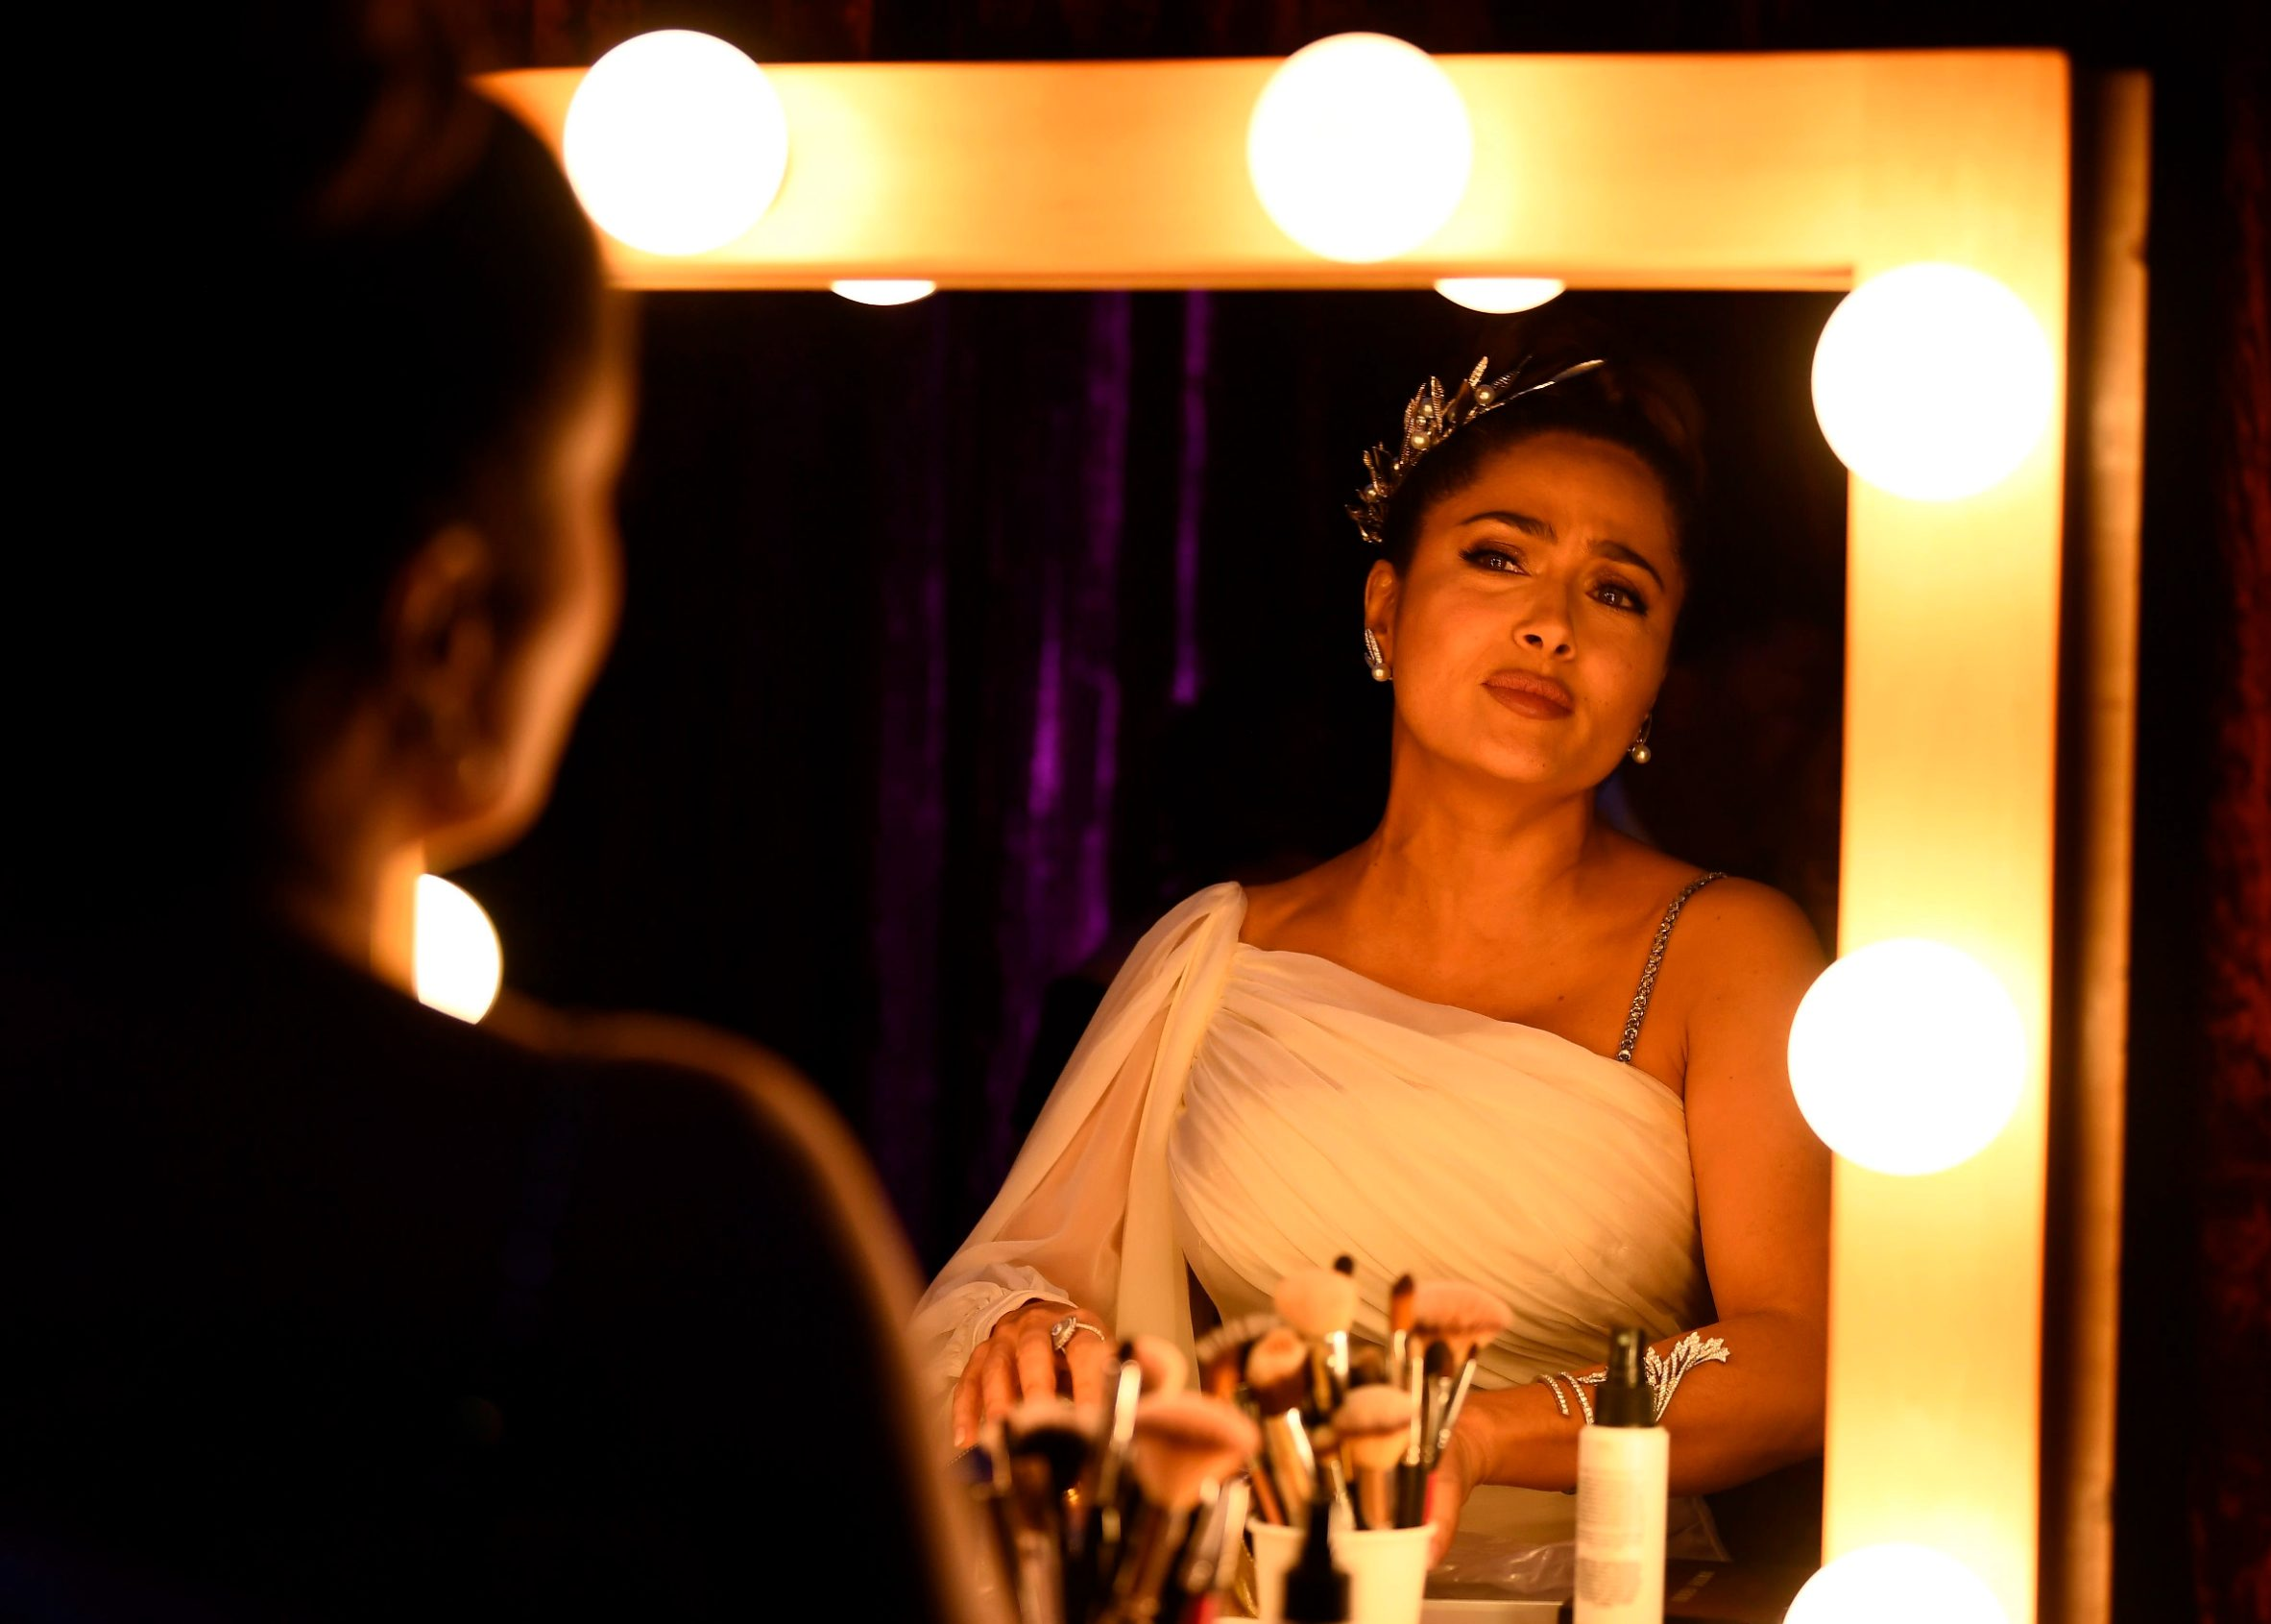 In this handout photo provided by A.M.P.A.S. Salma Hayek Pinault applies makeup backstage during the 92nd Annual Academy Awards at the Dolby Theatre on February 09, 2020 in Hollywood, California. (Photo by Matt Petit / AMPAS / AFP) / RESTRICTED TO EDITORIAL USE - MANDATORY CREDIT